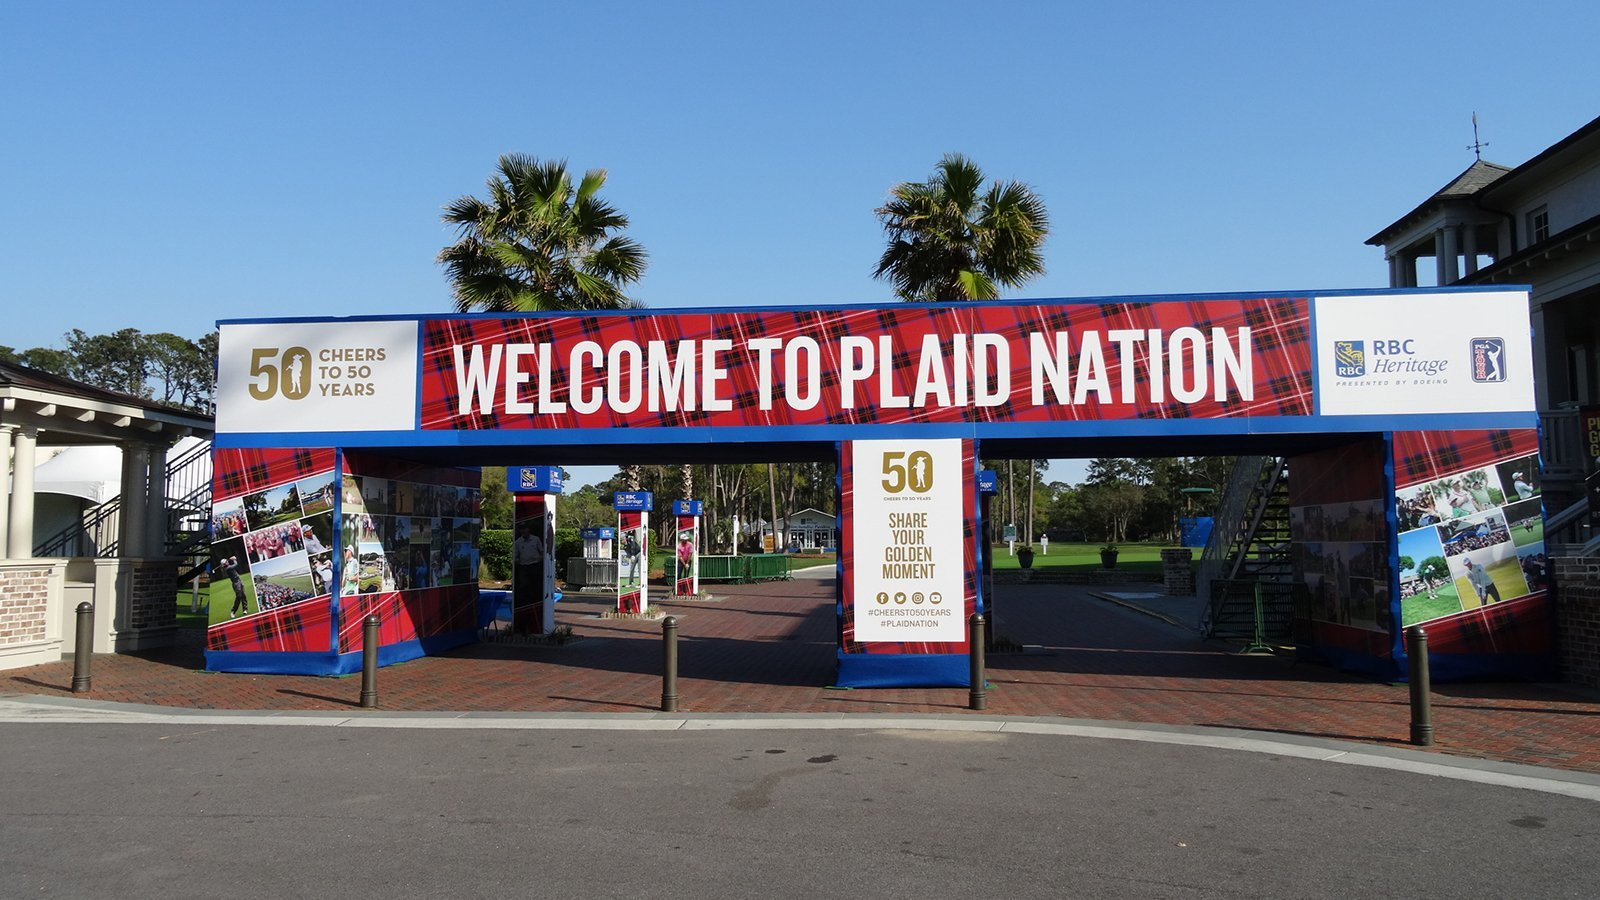 2018 RBC Heritage Welcomes You to Plaid Nation